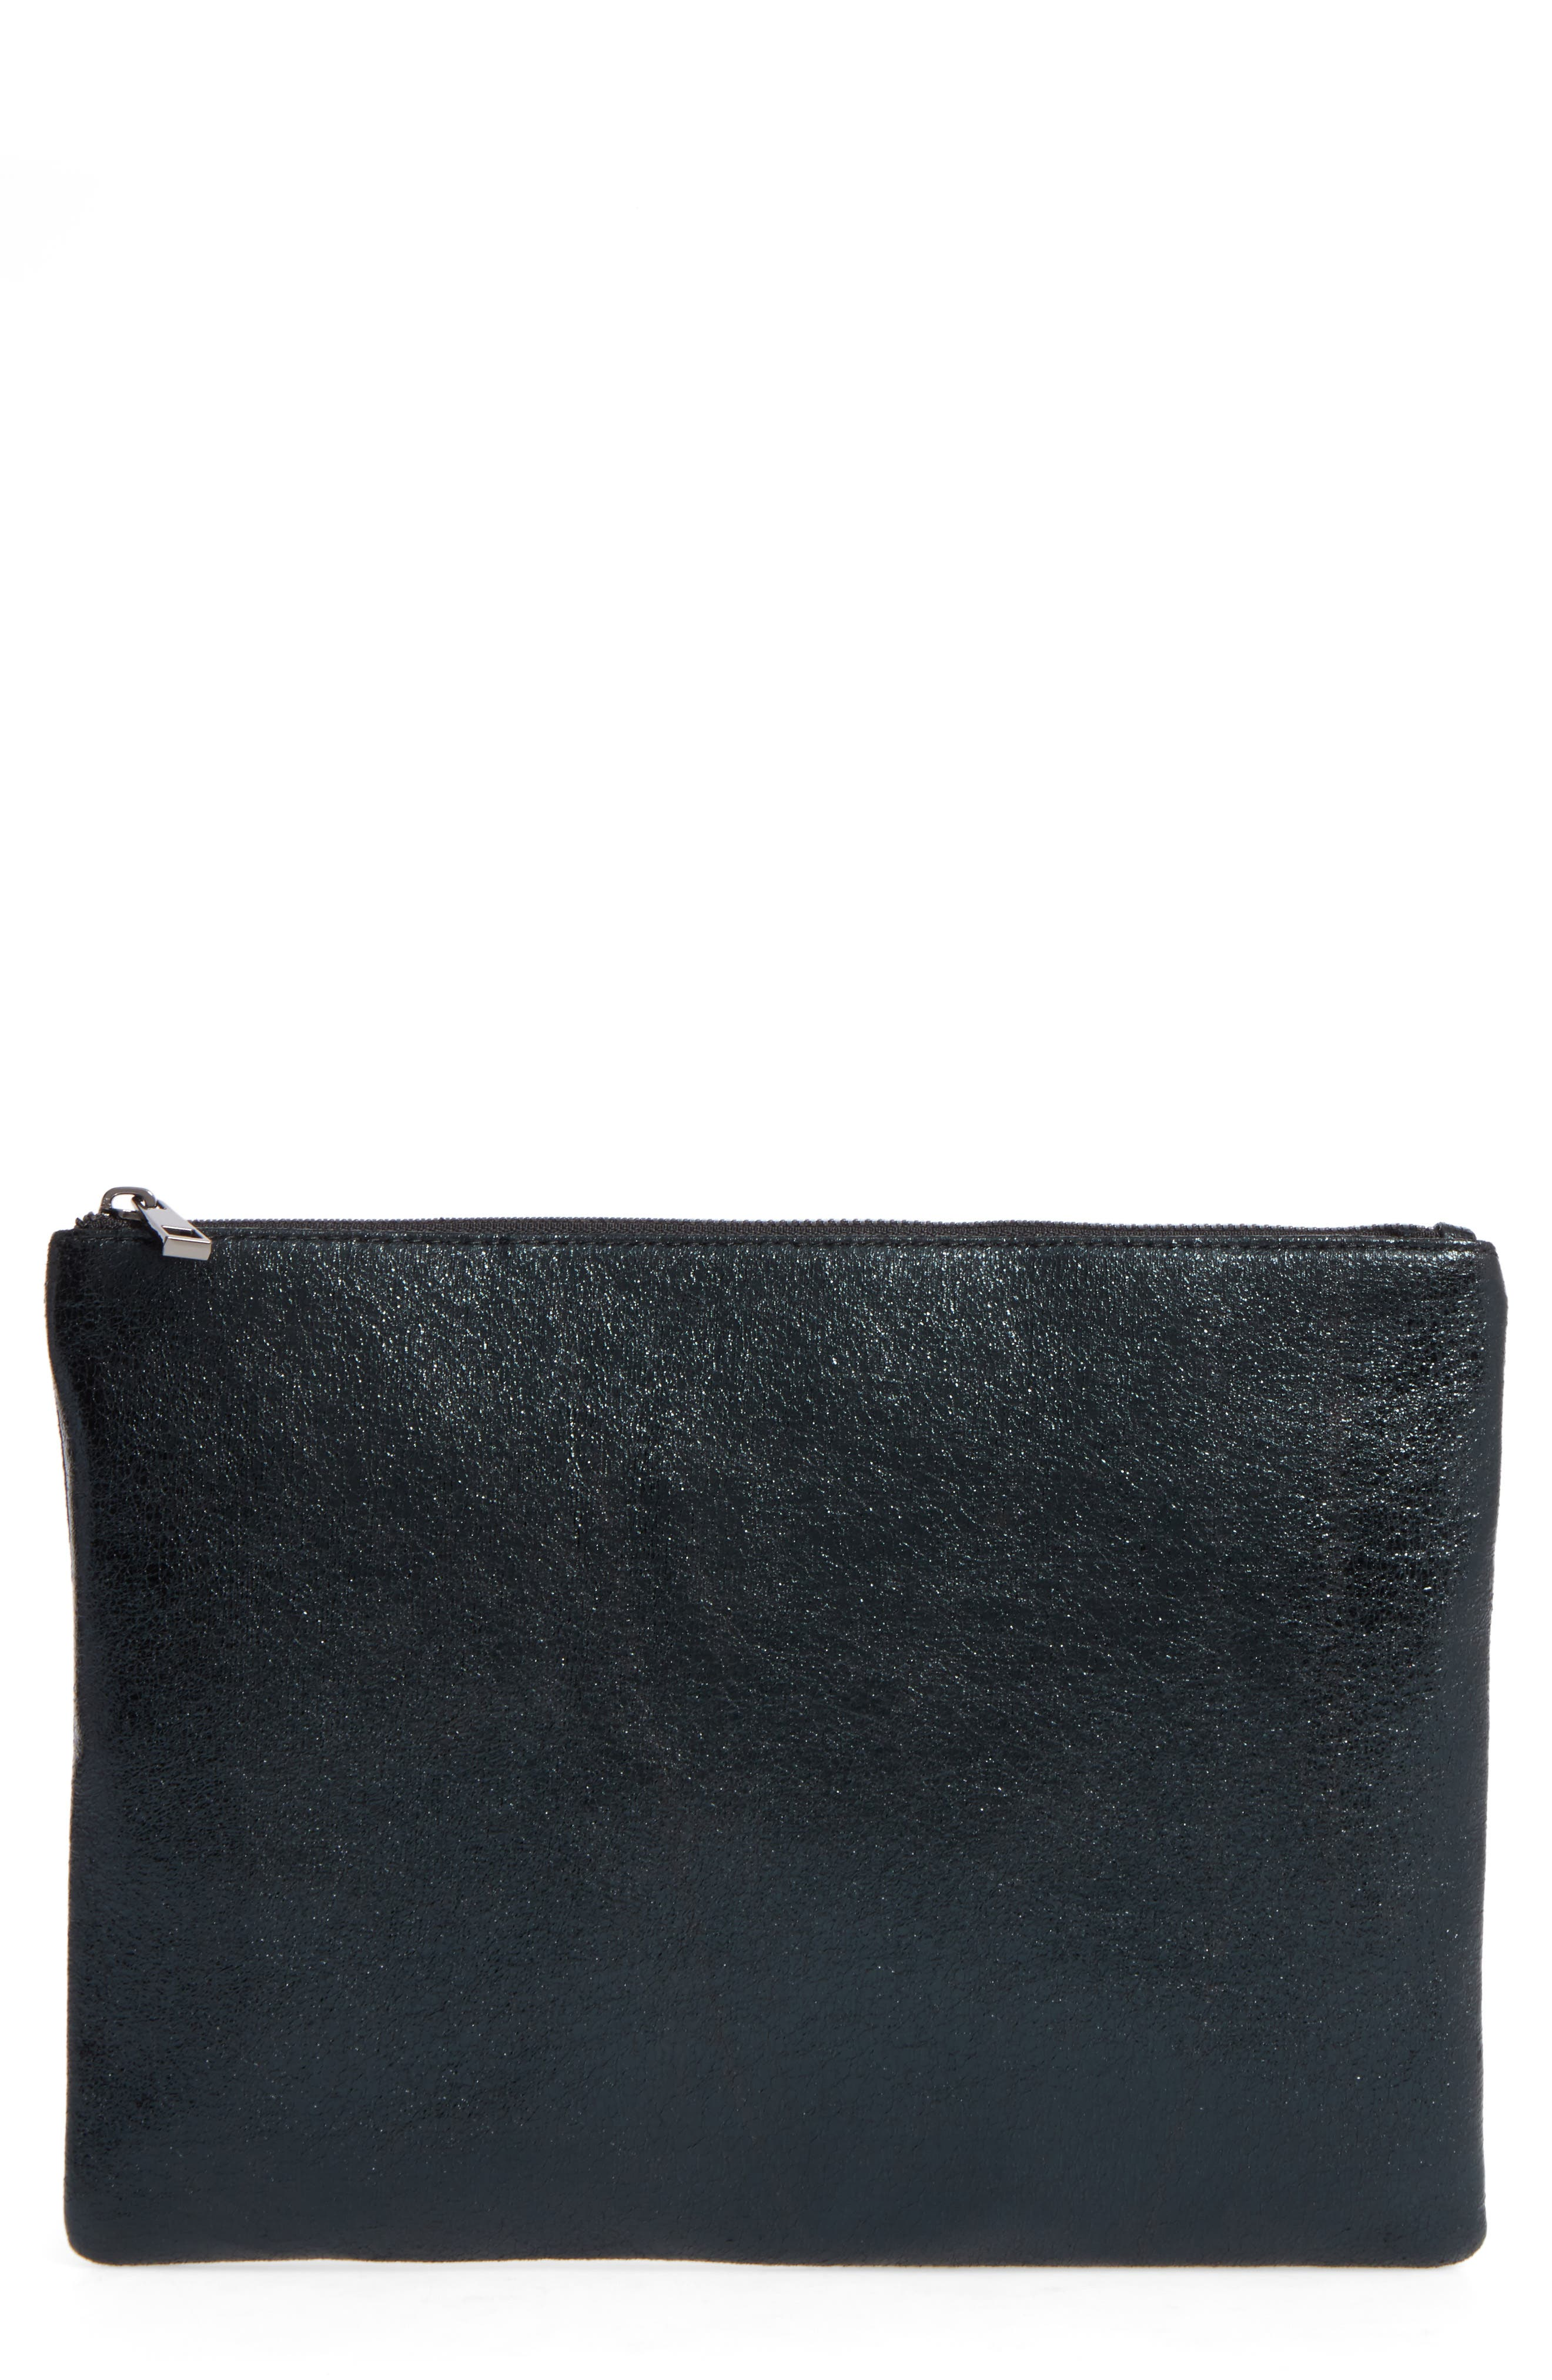 Main Image - BP. Faux Leather Large Zip Pouch